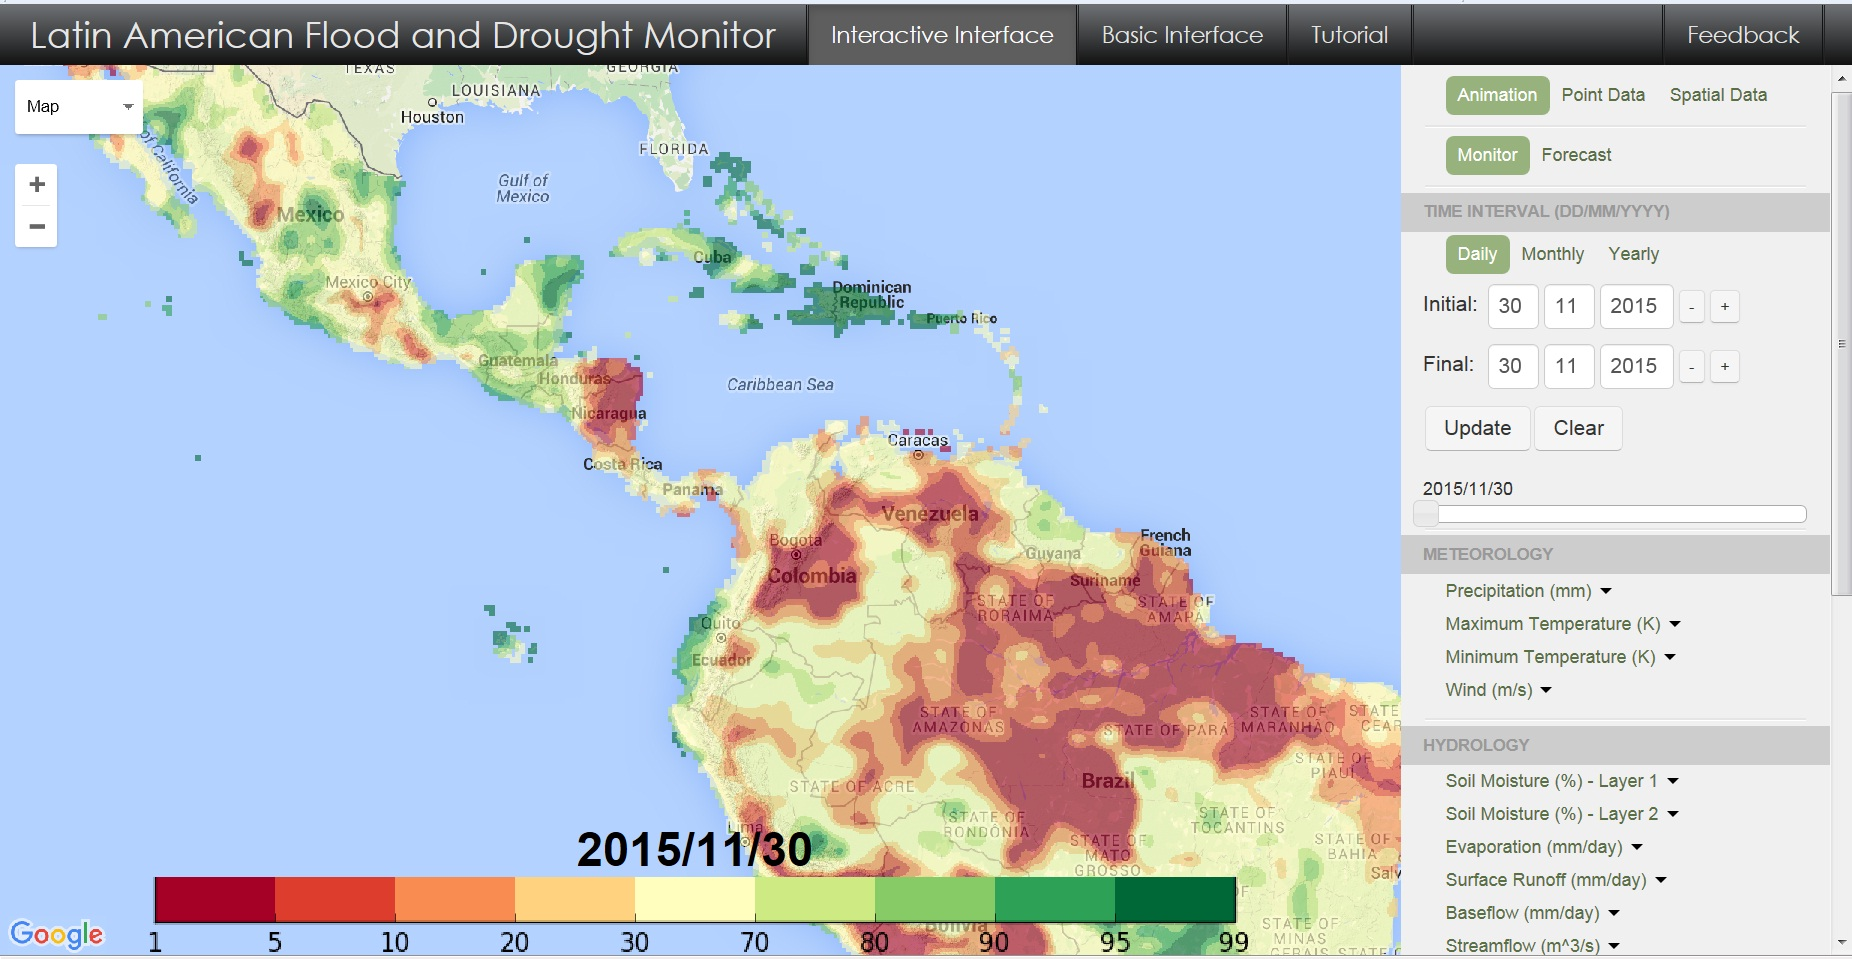 LAC Drought Monitor